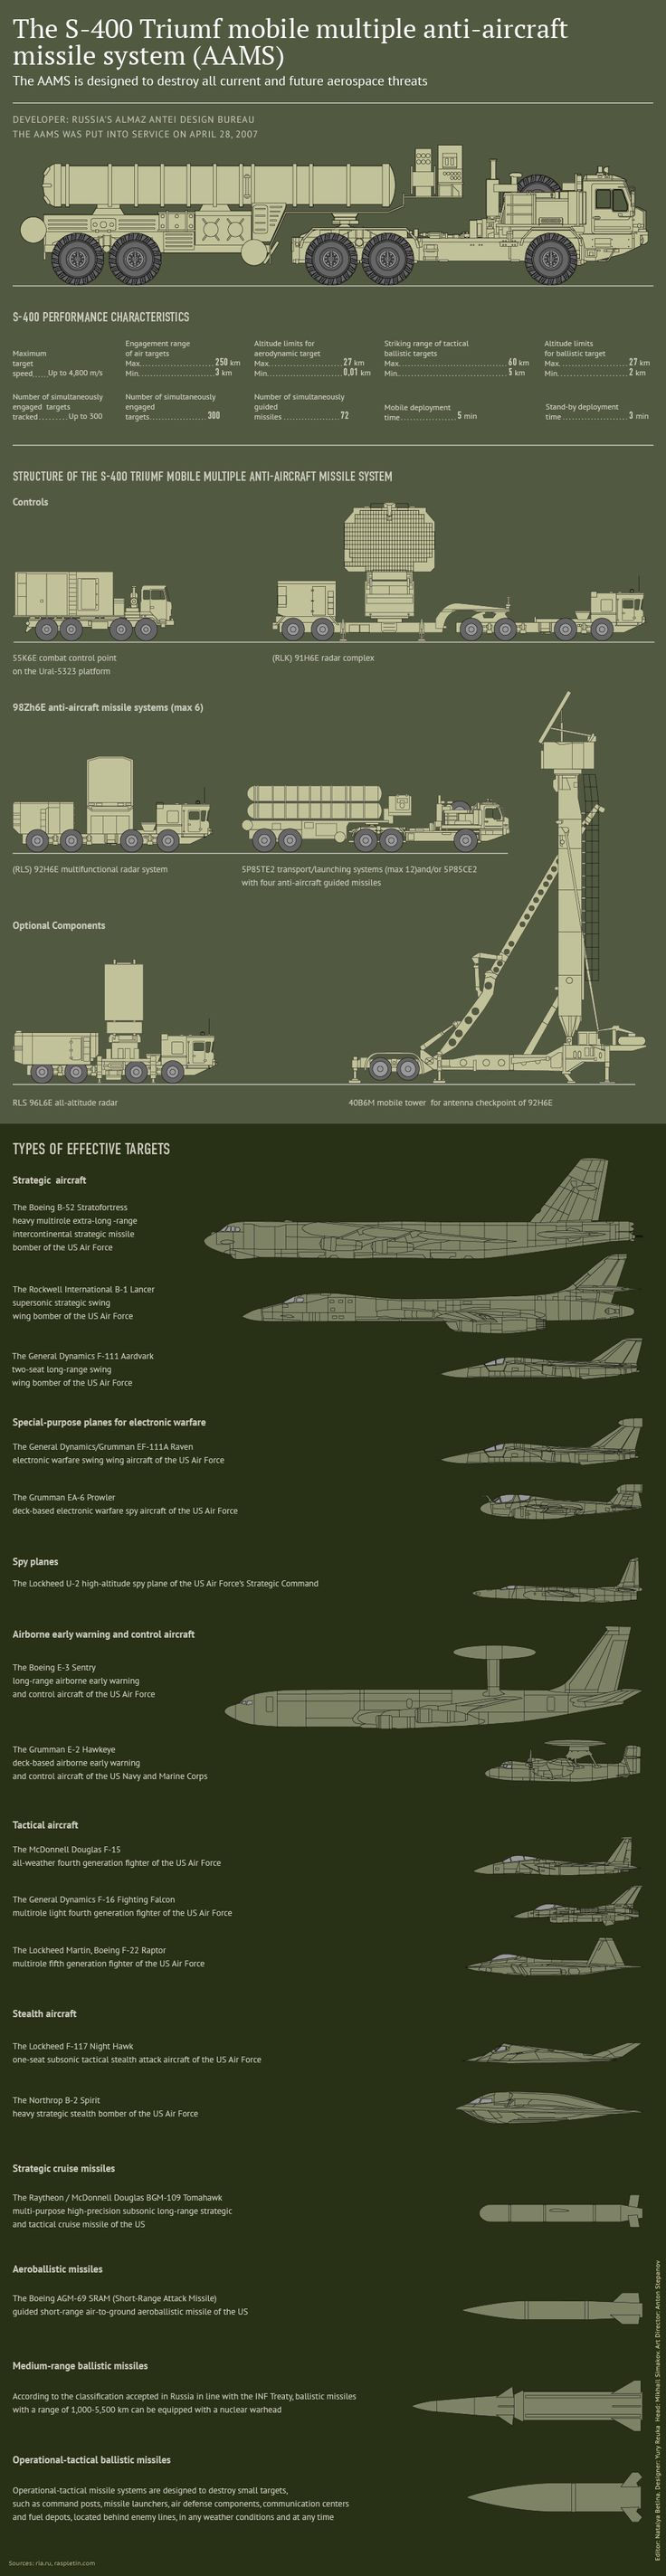 Mobile Surface-to-Air Missile System The S-400 Triumf - NATO reporting name: SA-21 Growler), previously known as S-300PMU-3, is an anti-aircraft weapon system developed by Russia's Almaz Central Design Bureau in the 1990s as an upgrade of the S-300 family. In April 2015 a successful test firing of the missile was conducted at an airborne target at a range of 400 km (250 mi). In other tests 9M96 missile using an active radar homing head has reached a height of 56 km